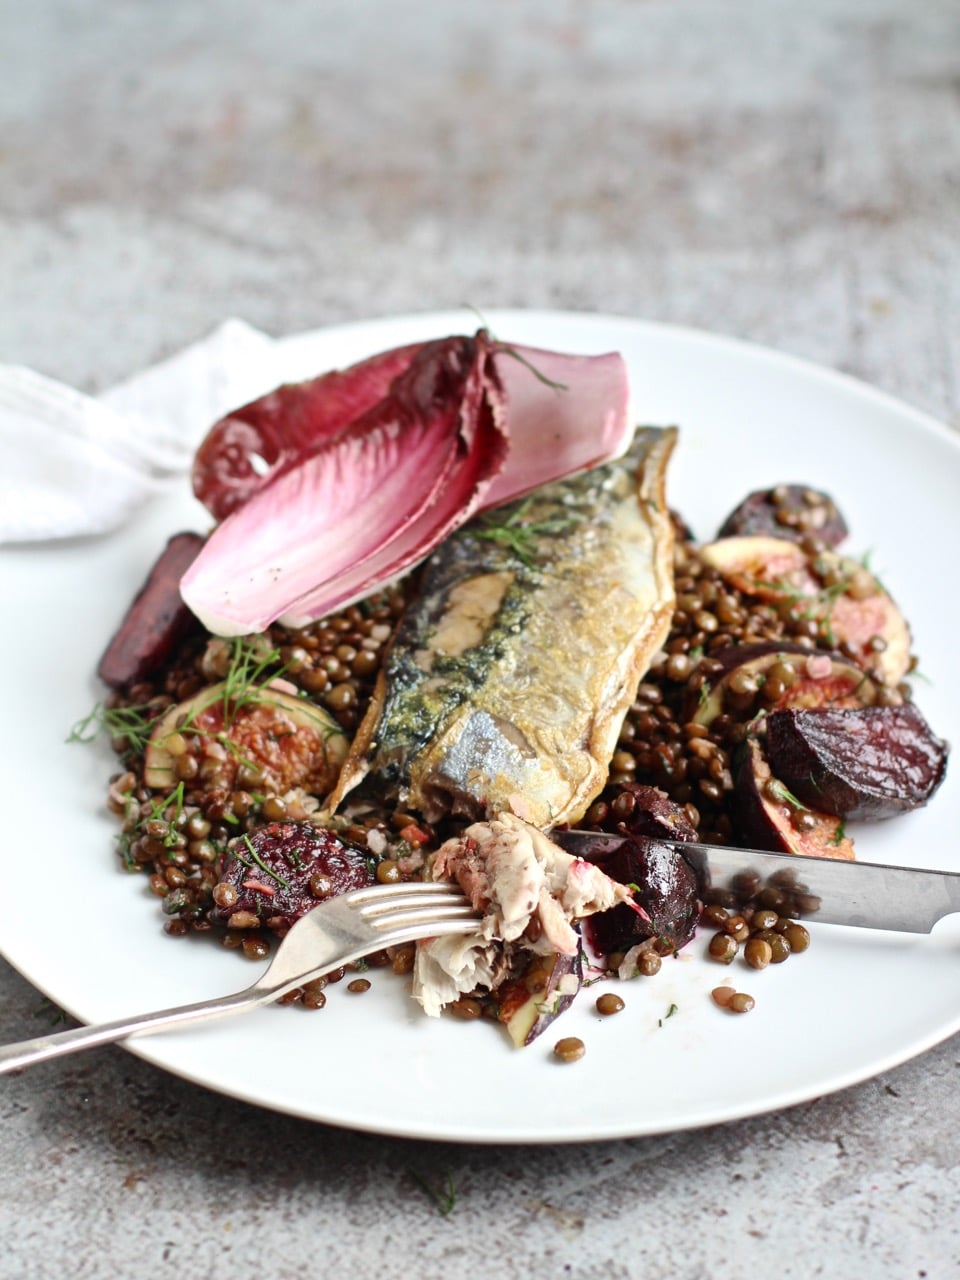 Pan-fried Mackerel with Warm Lentil, Beetroot and Figs | Natural Kitchen Adventures